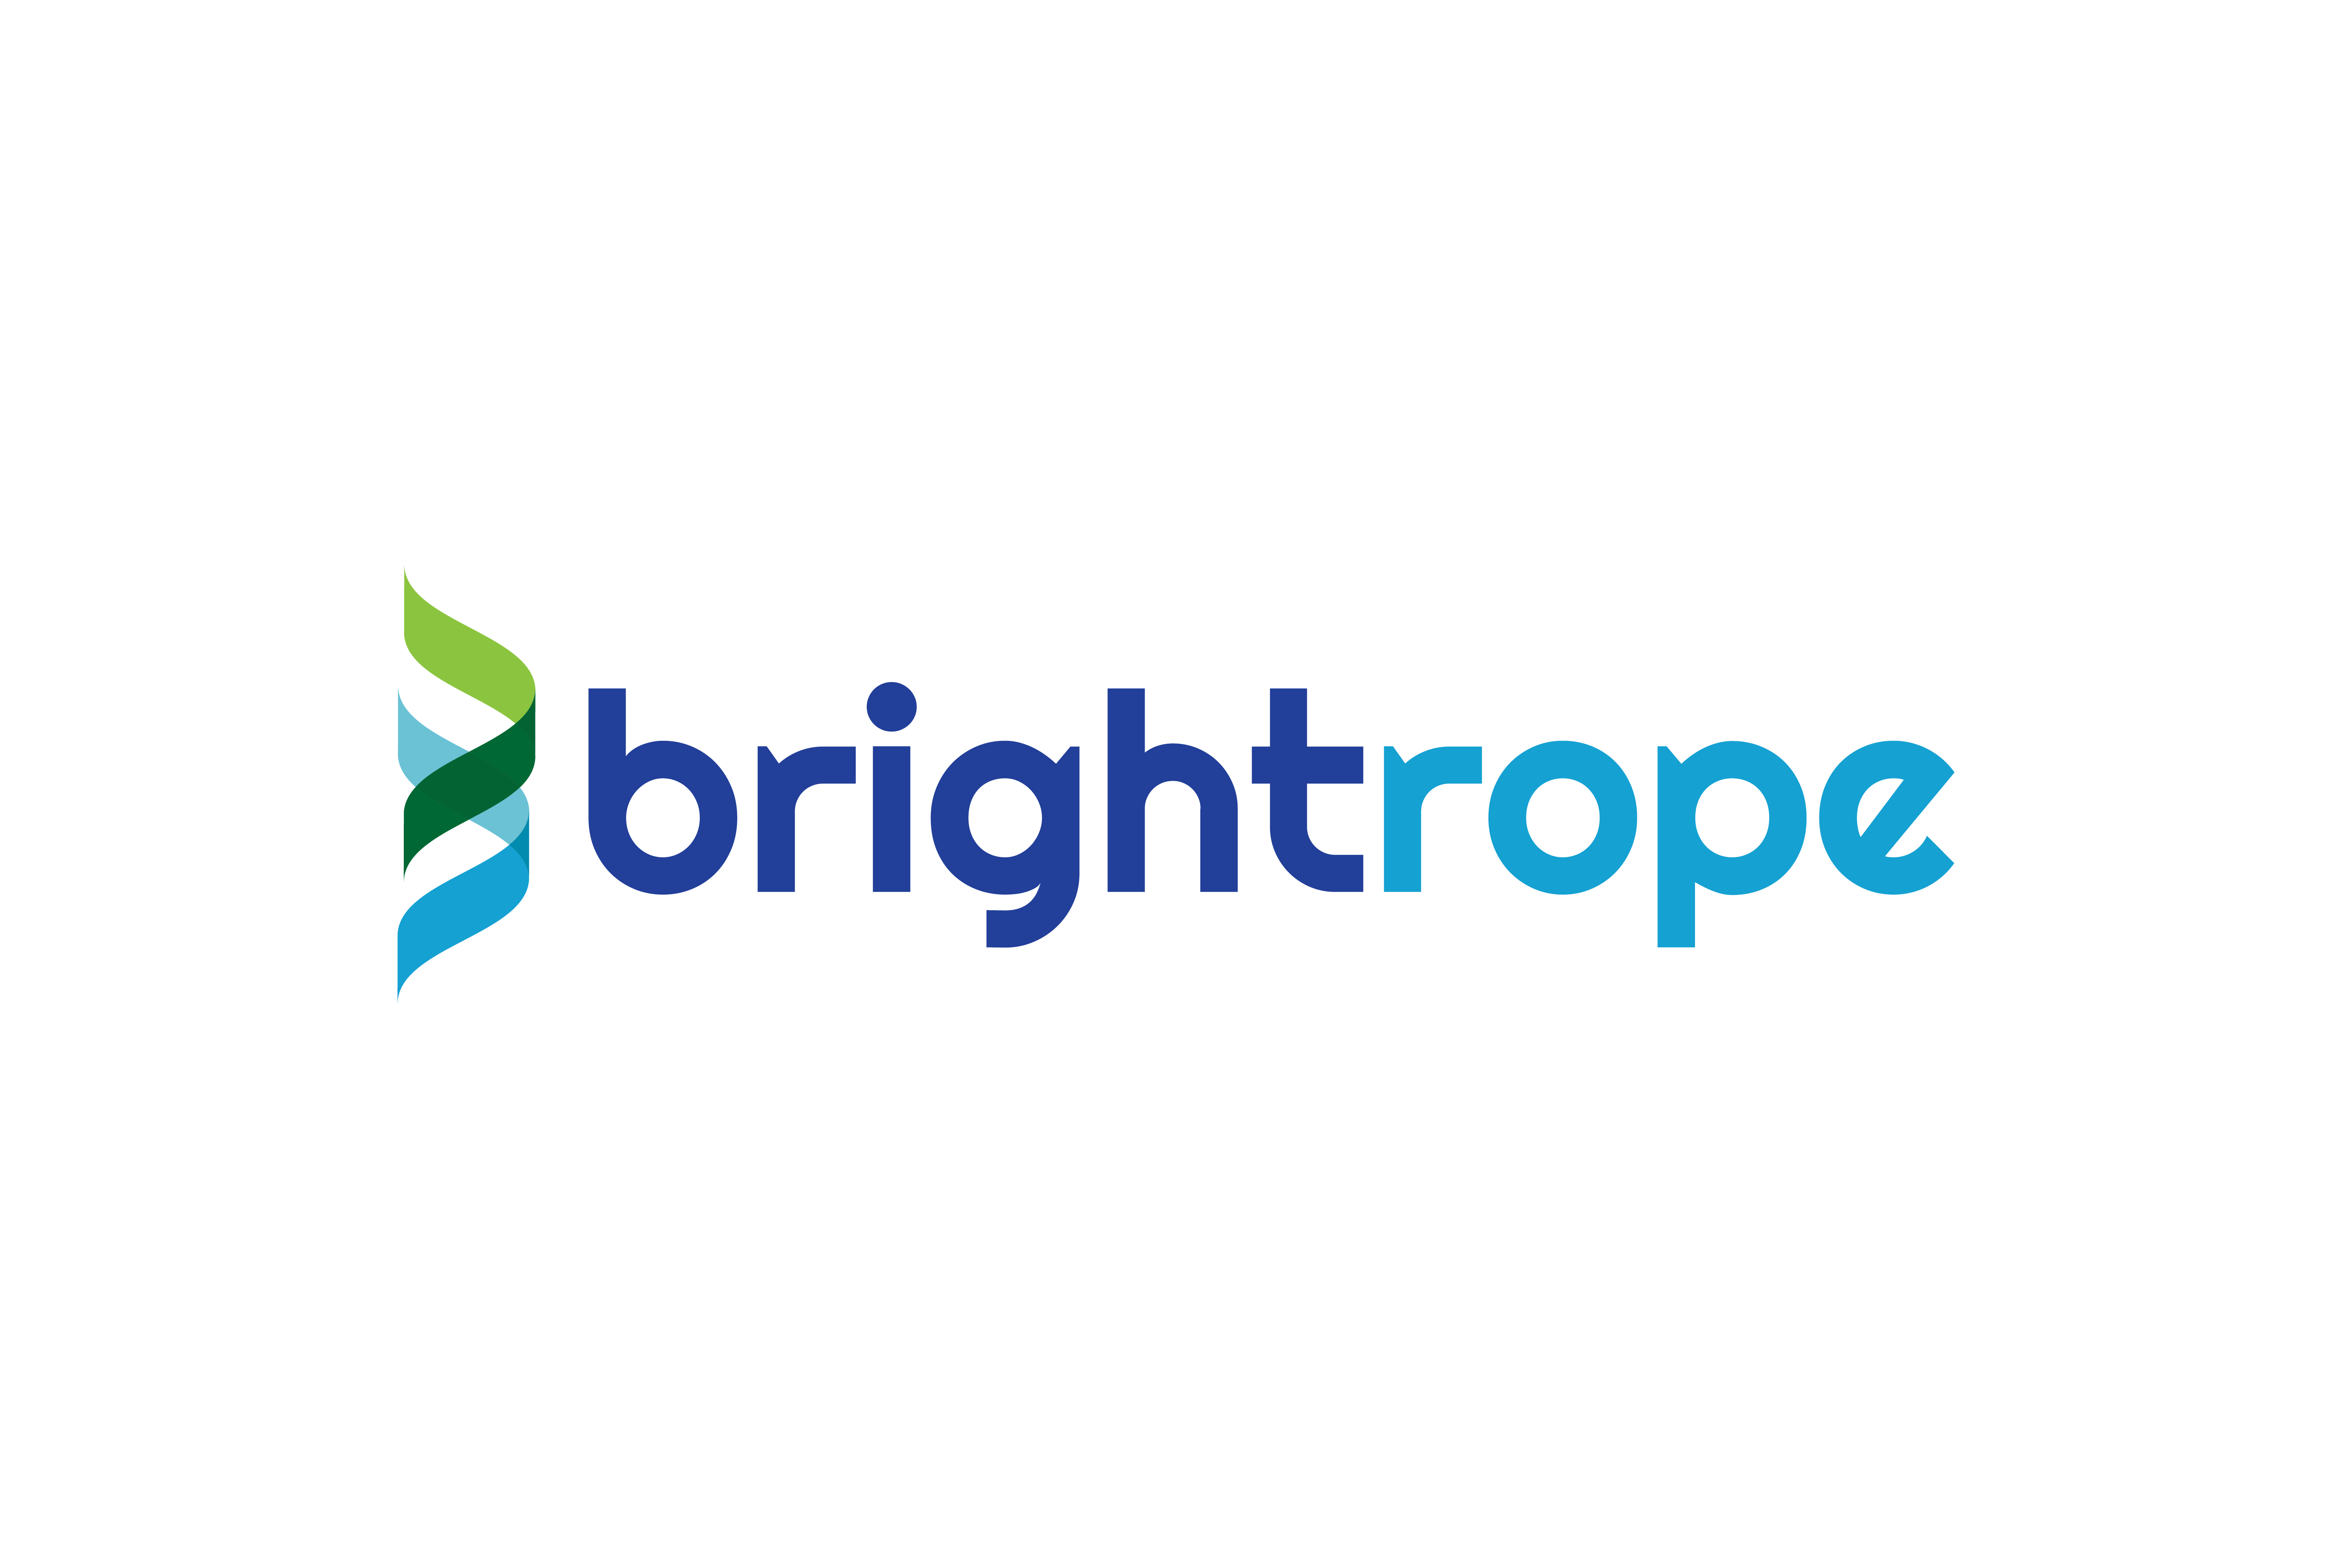 Logo design by Virtual Apiary for Brightrope